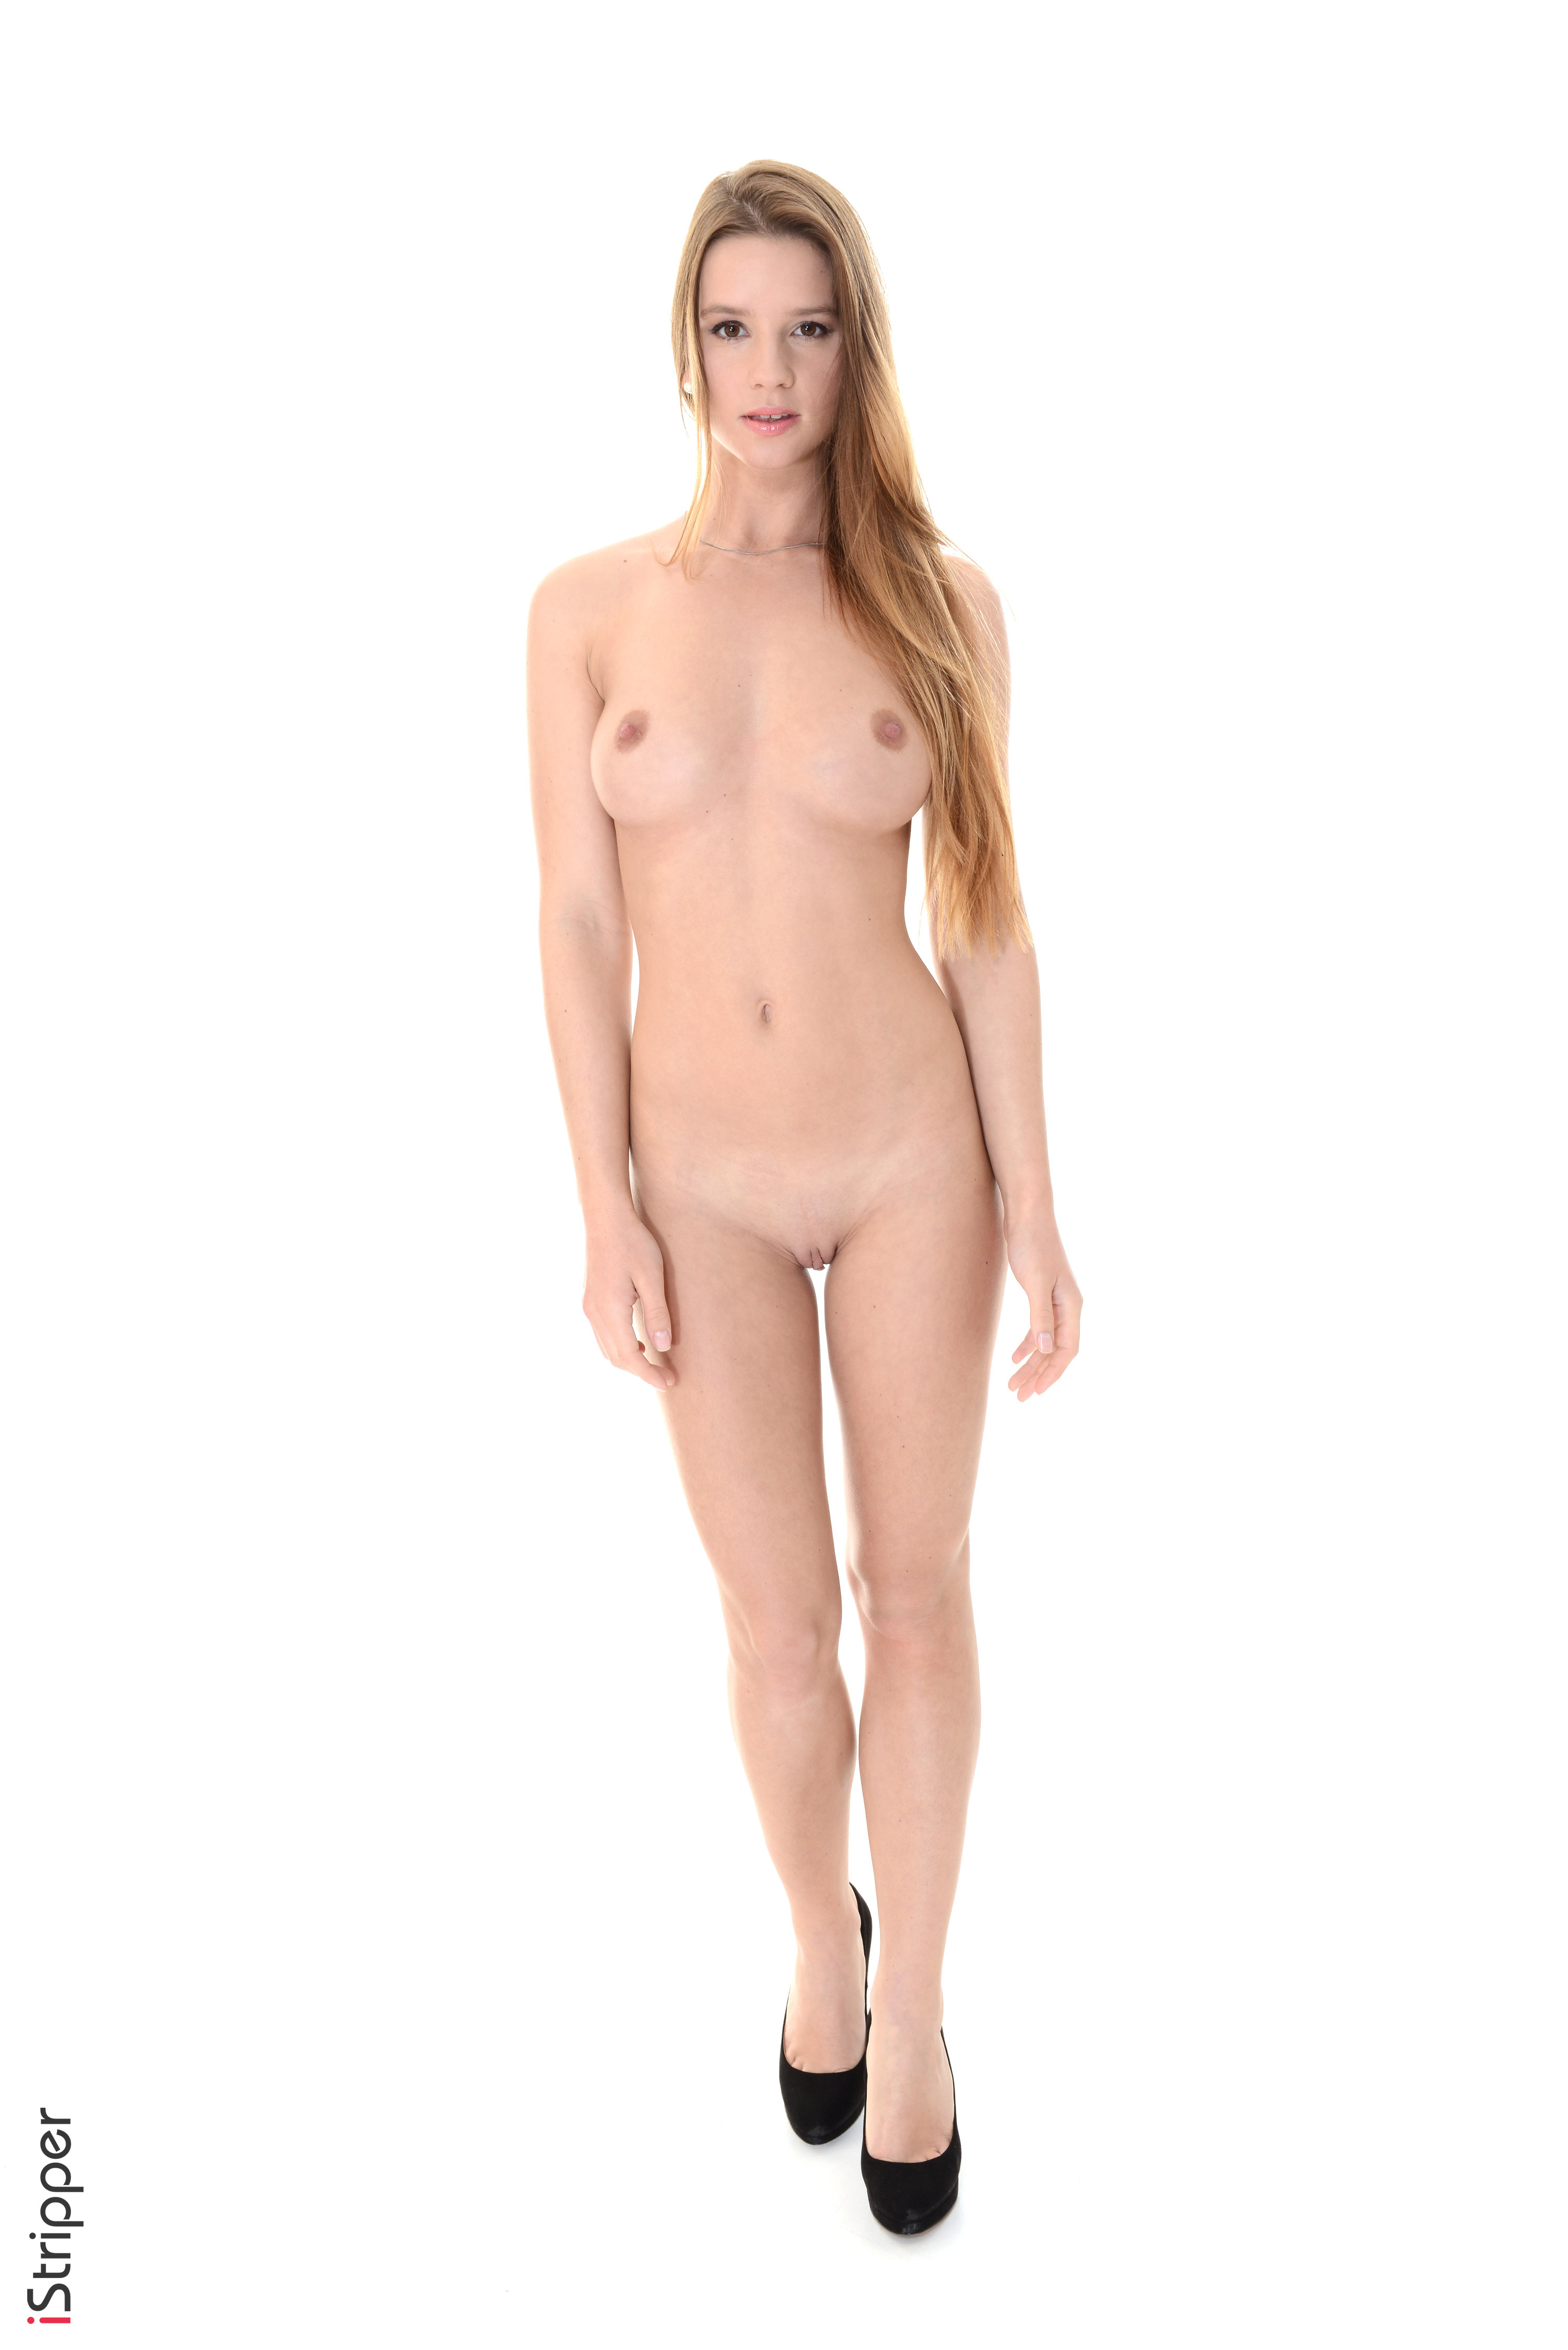 nude wallpapers of porn stars